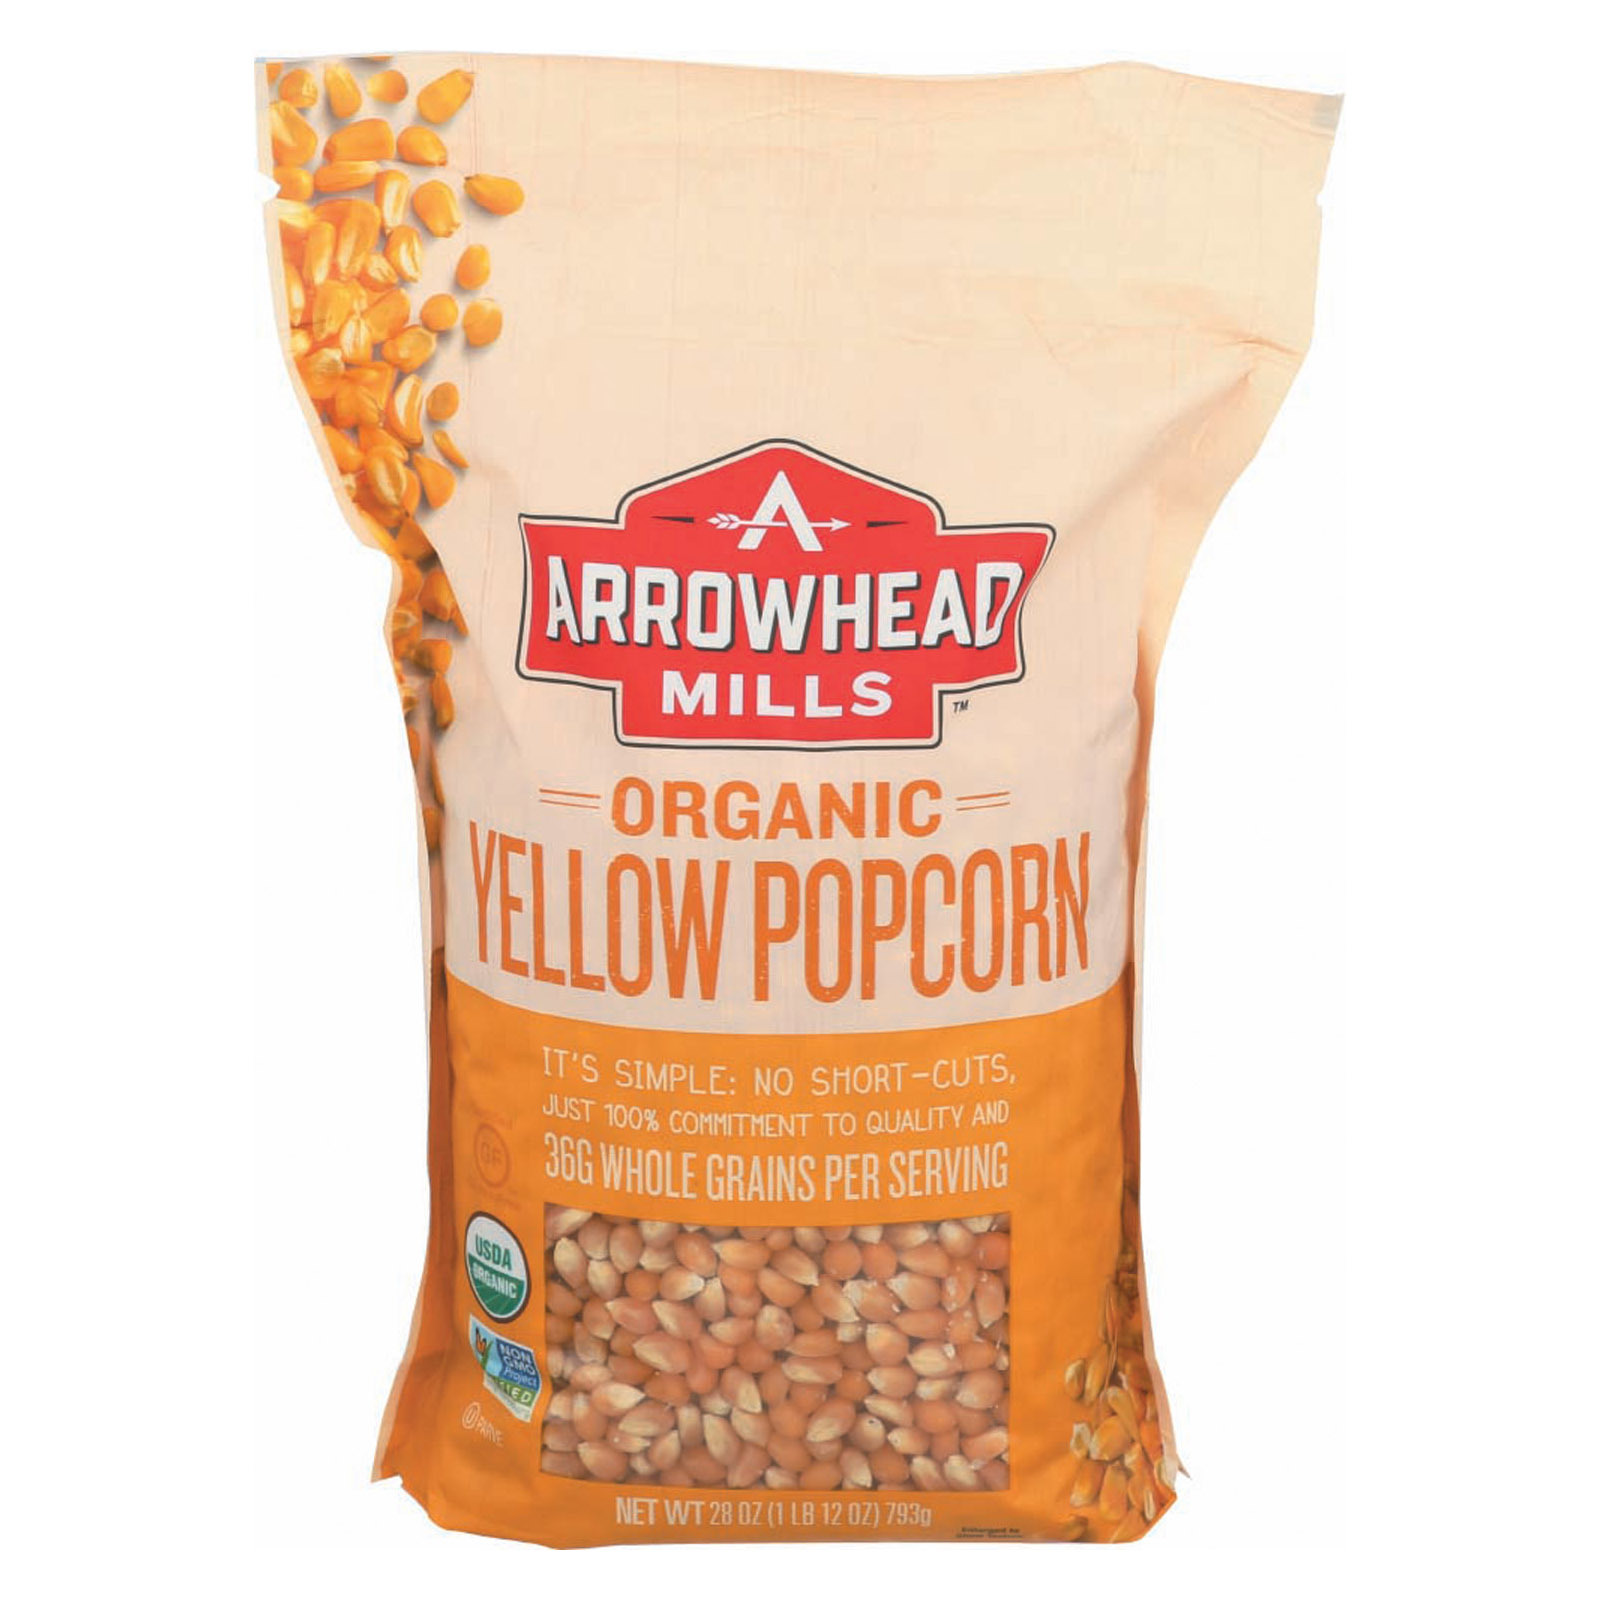 Arrowhead Mills Organic Popcorn - Yellow - Case of 6 - 28 oz.